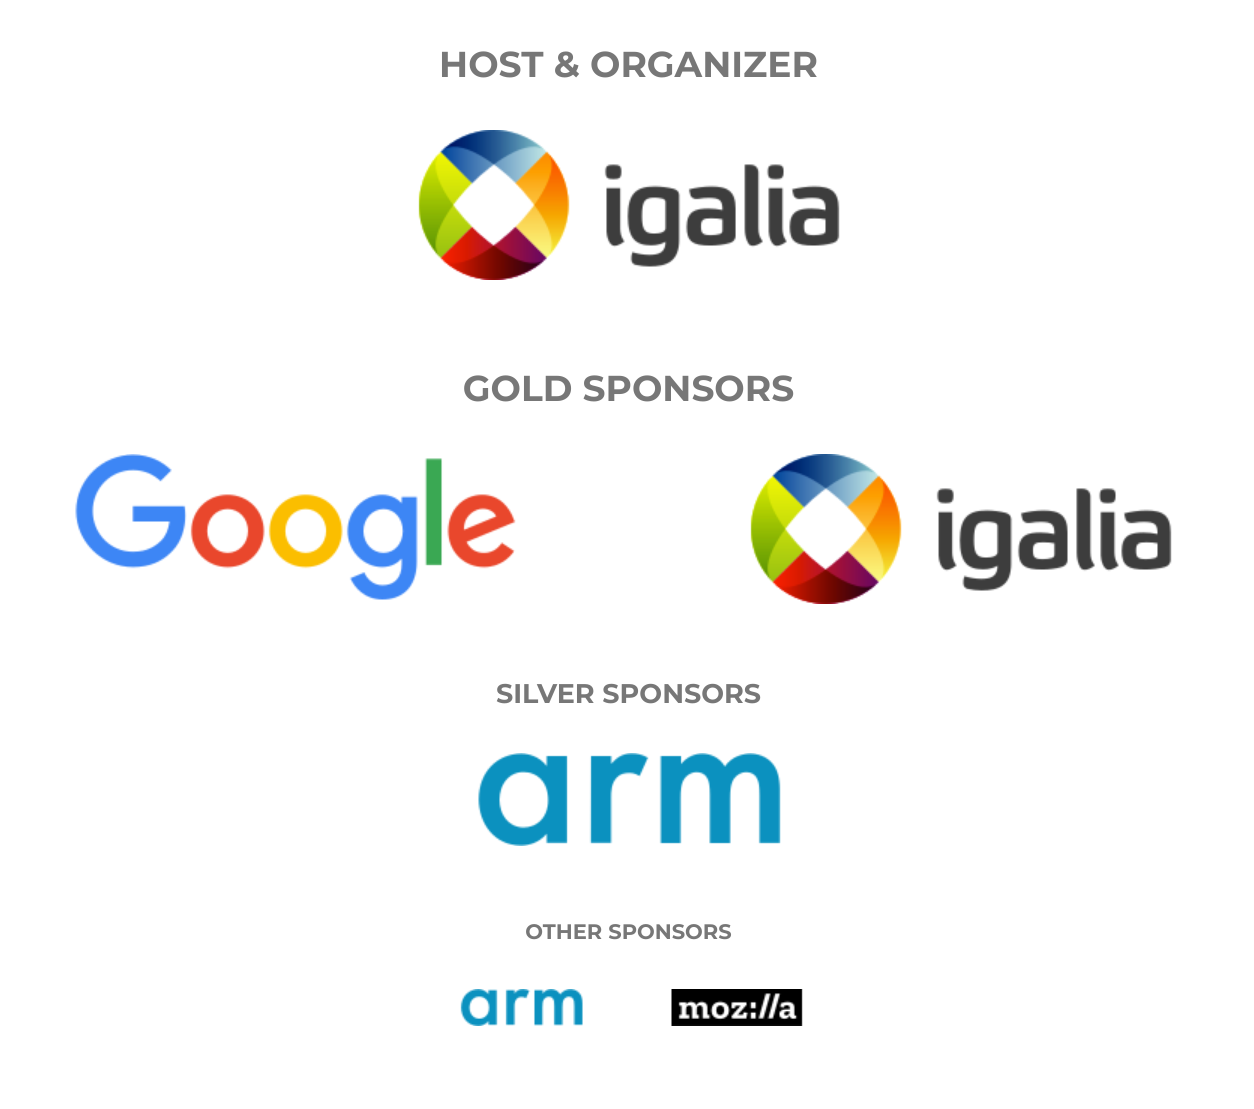 Web Engines Hackfest 2019 sponsors: Google and Igalia